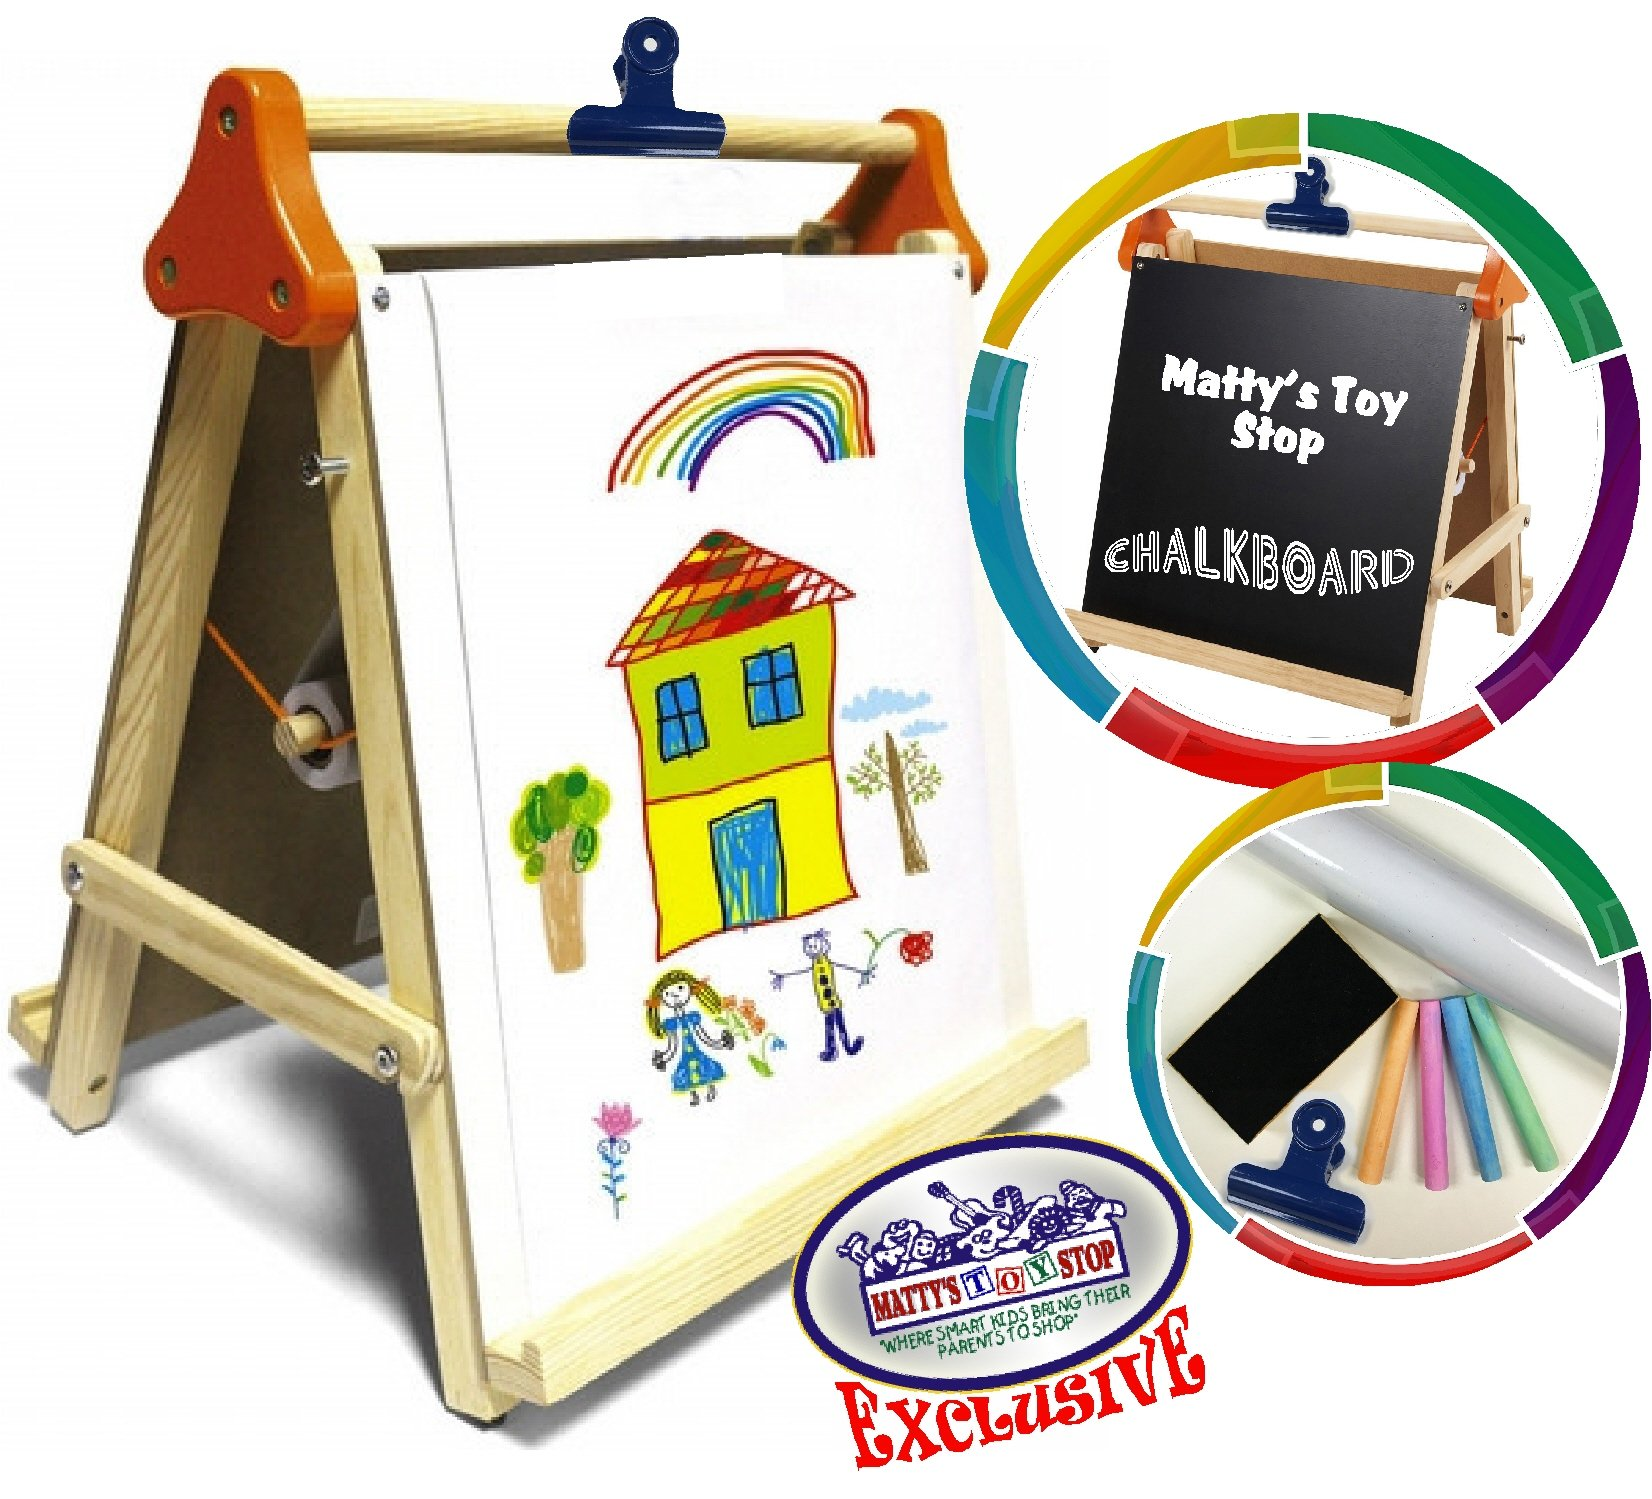 Deluxe 3-in-1 Wooden Tabletop Easel with Blackboard, Dry Erase, Paper Roll & Accessories - ''Matty's Toy Stop'' Exclusive